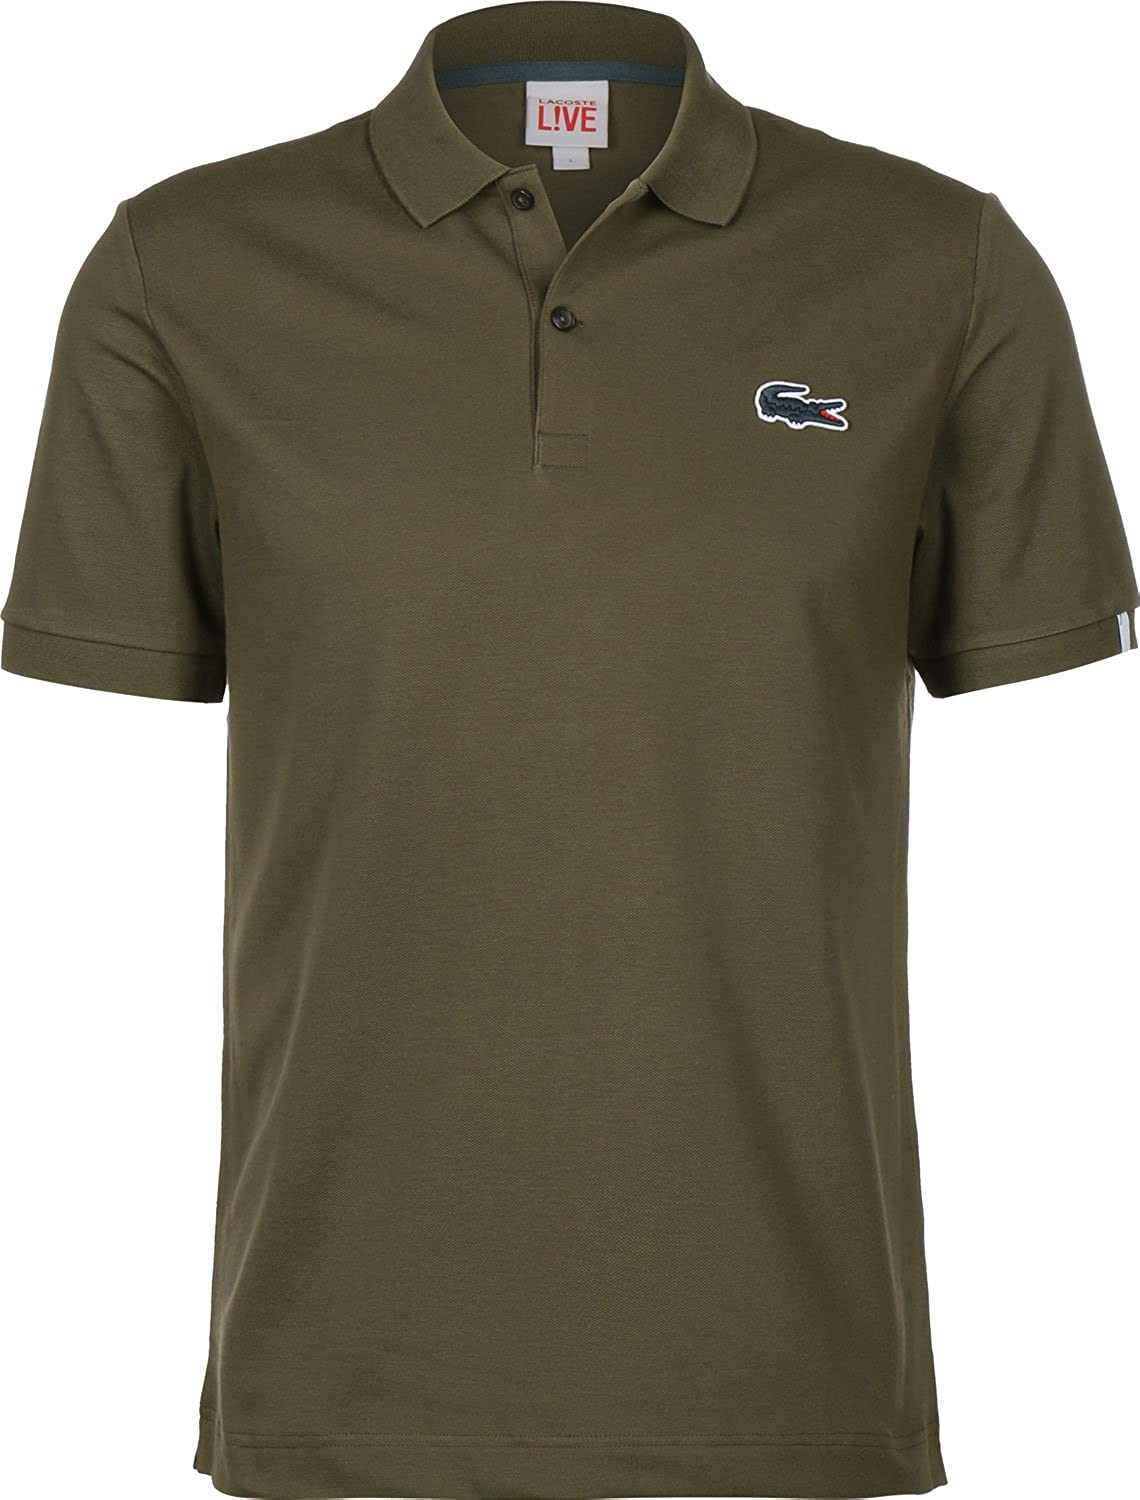 Lacoste Polo Live PH8391 Verde x-Small Verde: Amazon.es: Ropa y ...